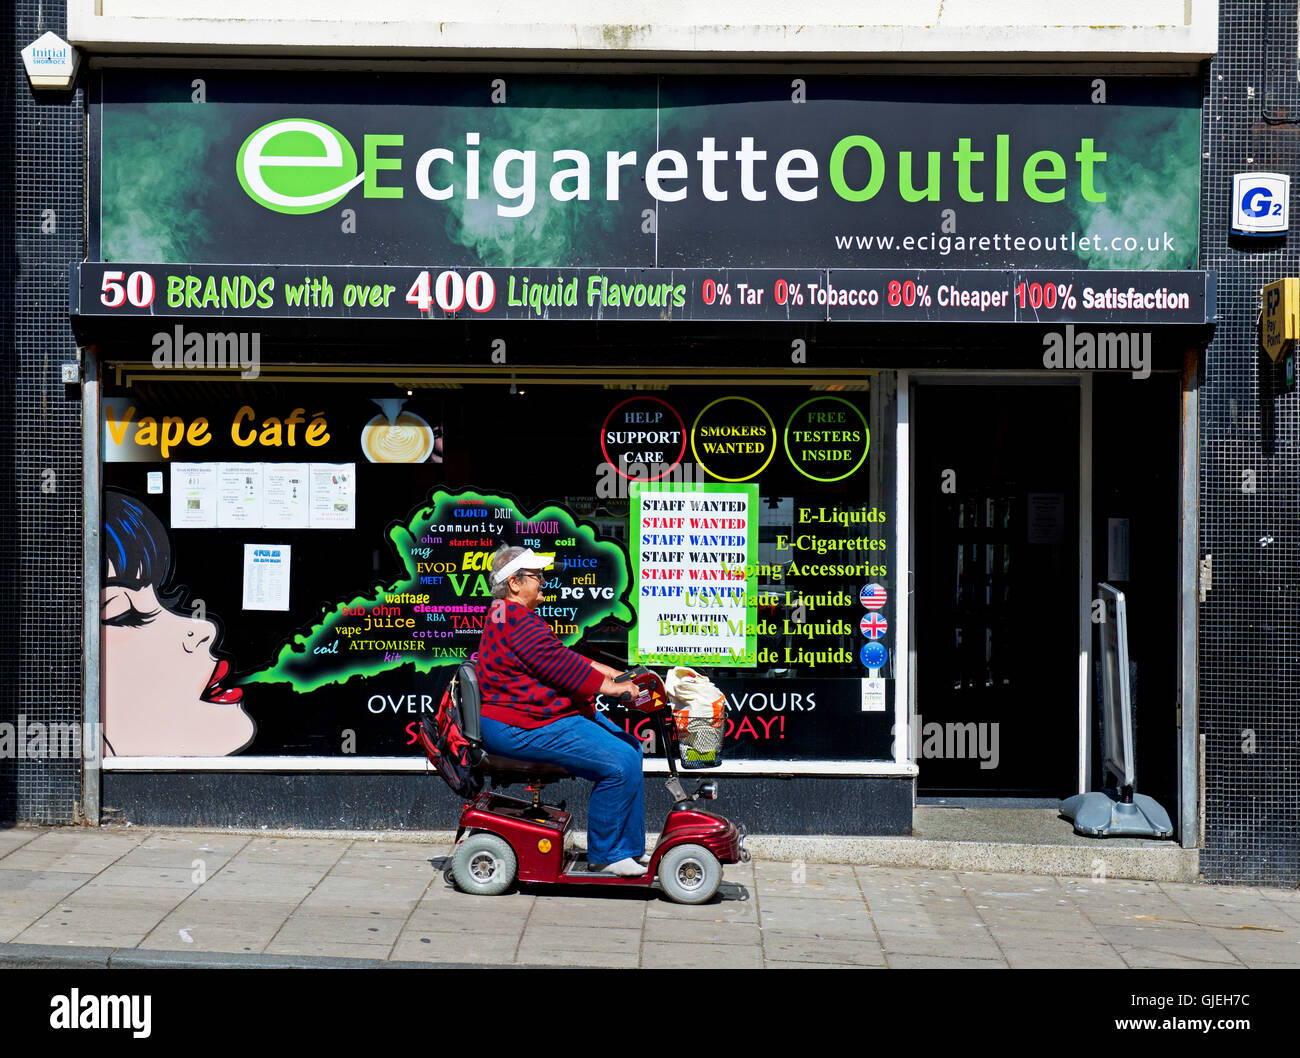 Woman on mobility scooter in front of Ecigarette outlet shop, England UK - Stock Image